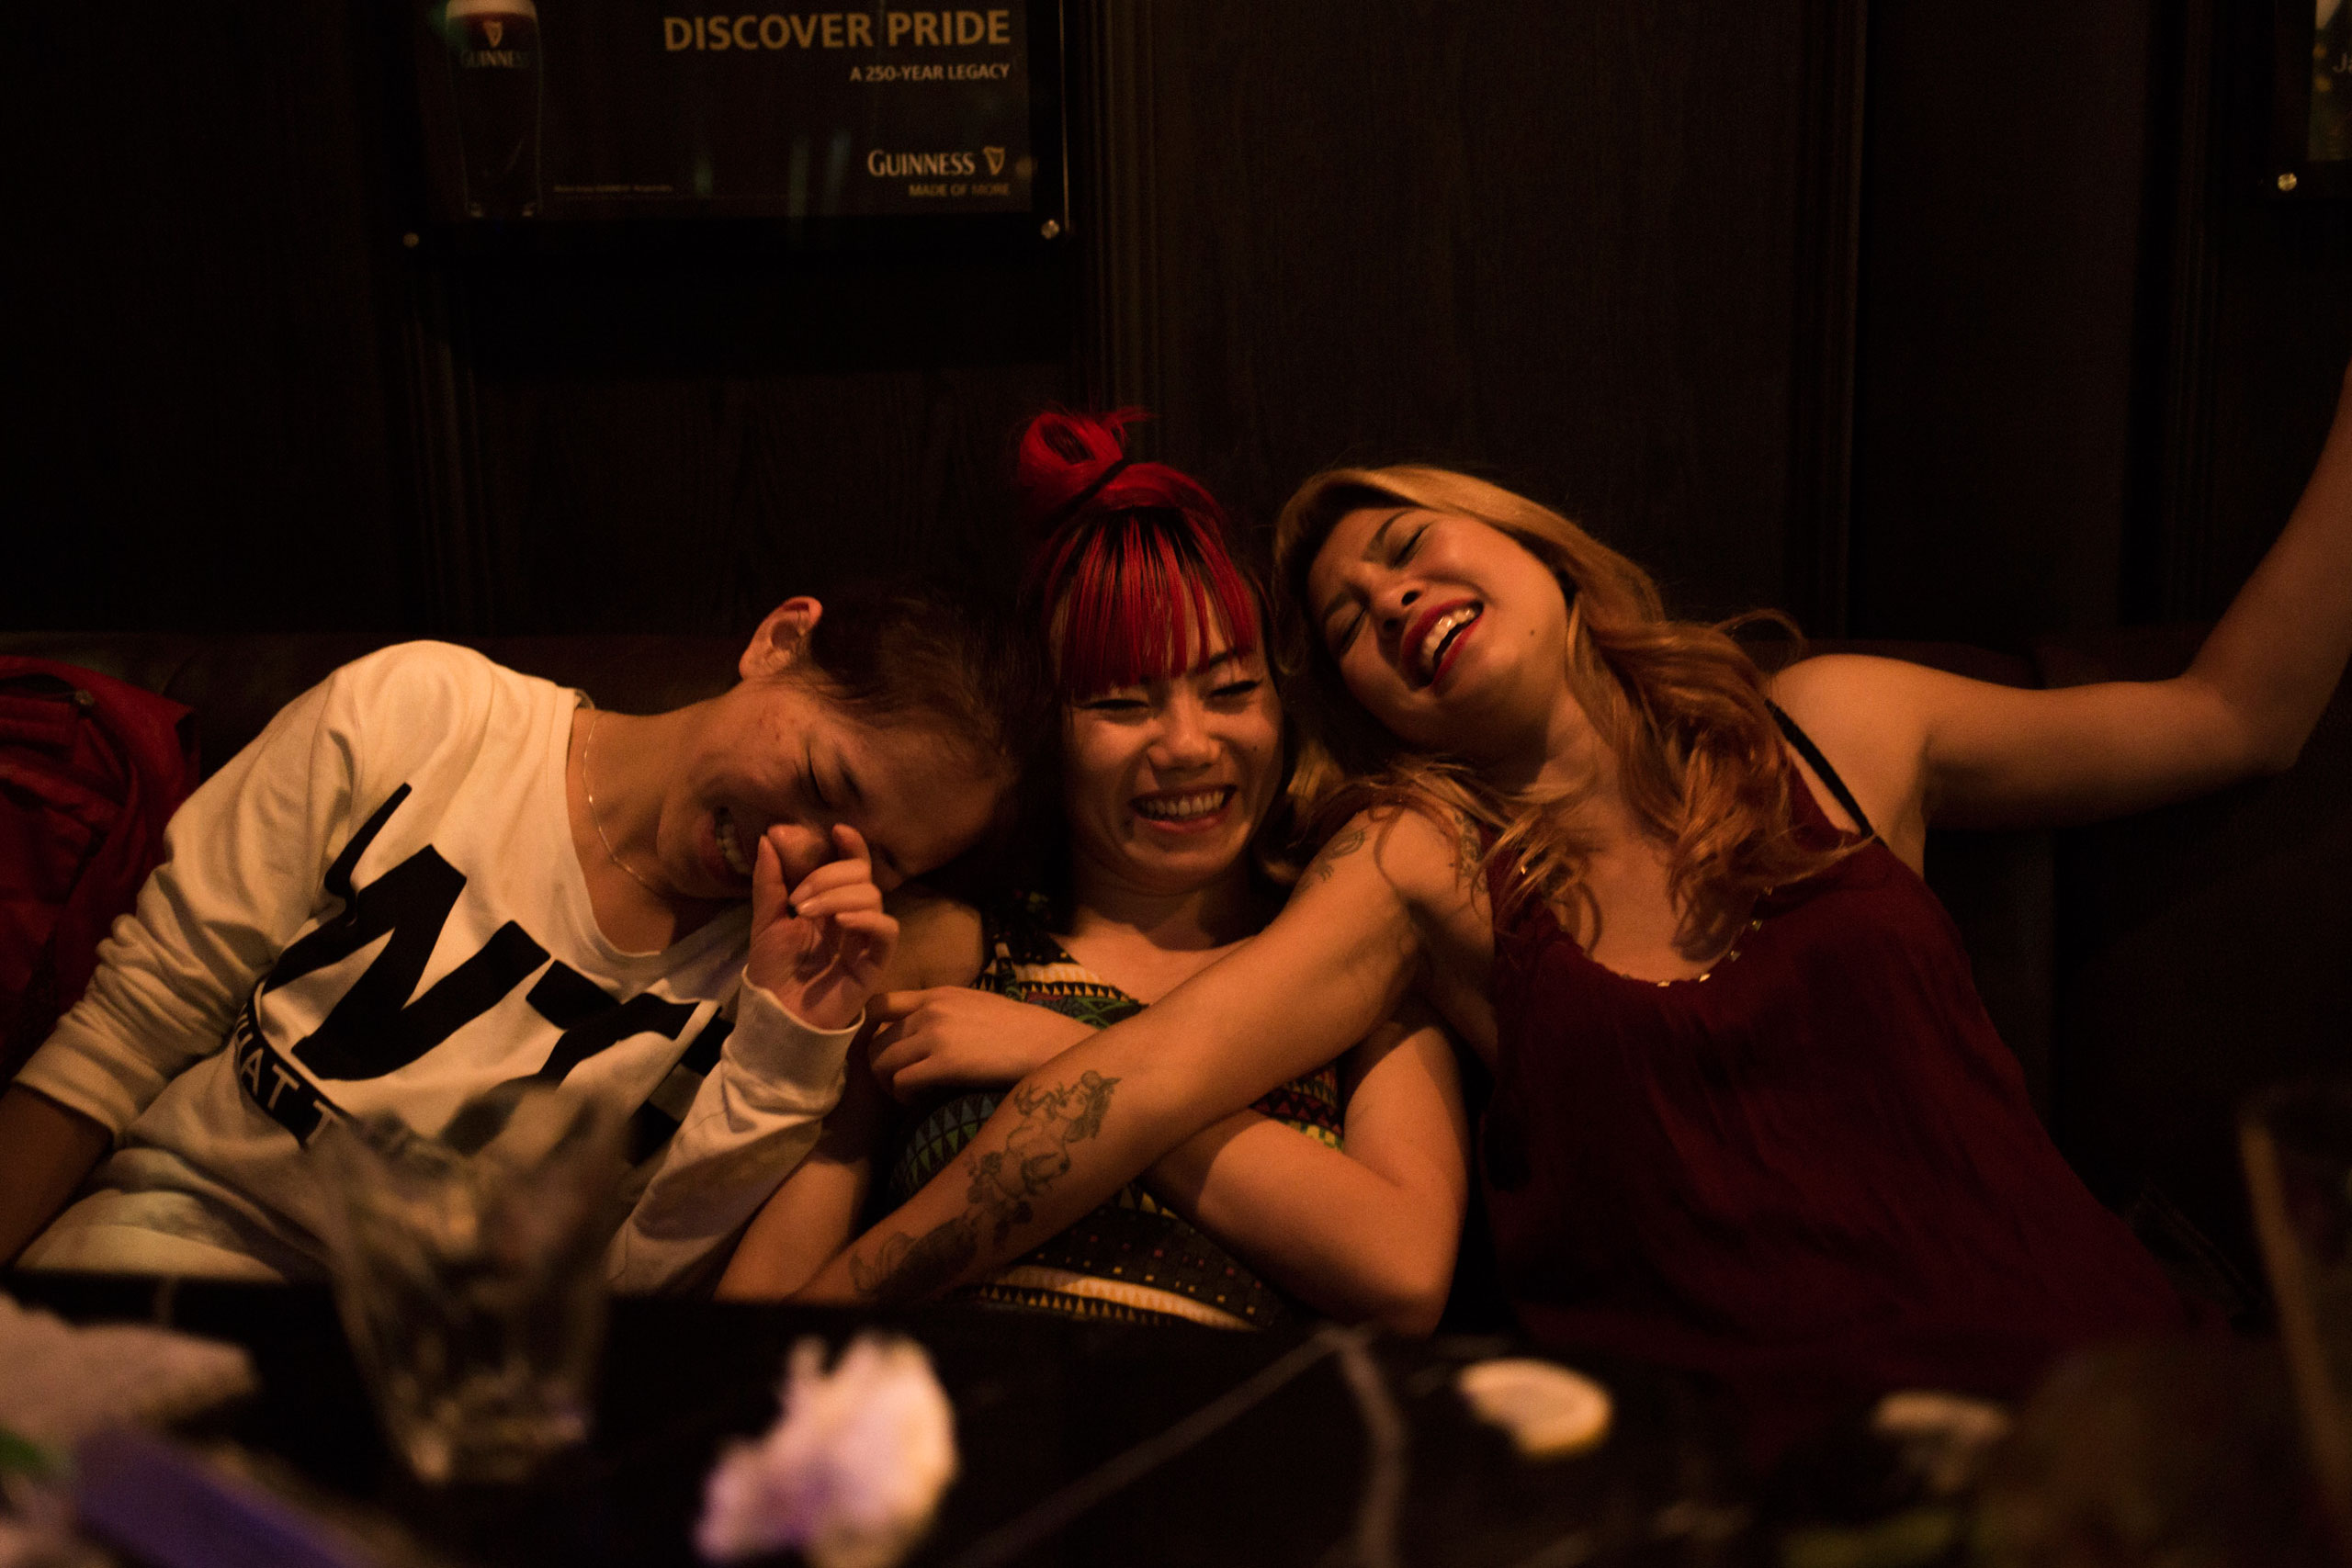 From left to right, Winne, Phoenix and Nana hang out after teaching a dance course, March 23, 2015.